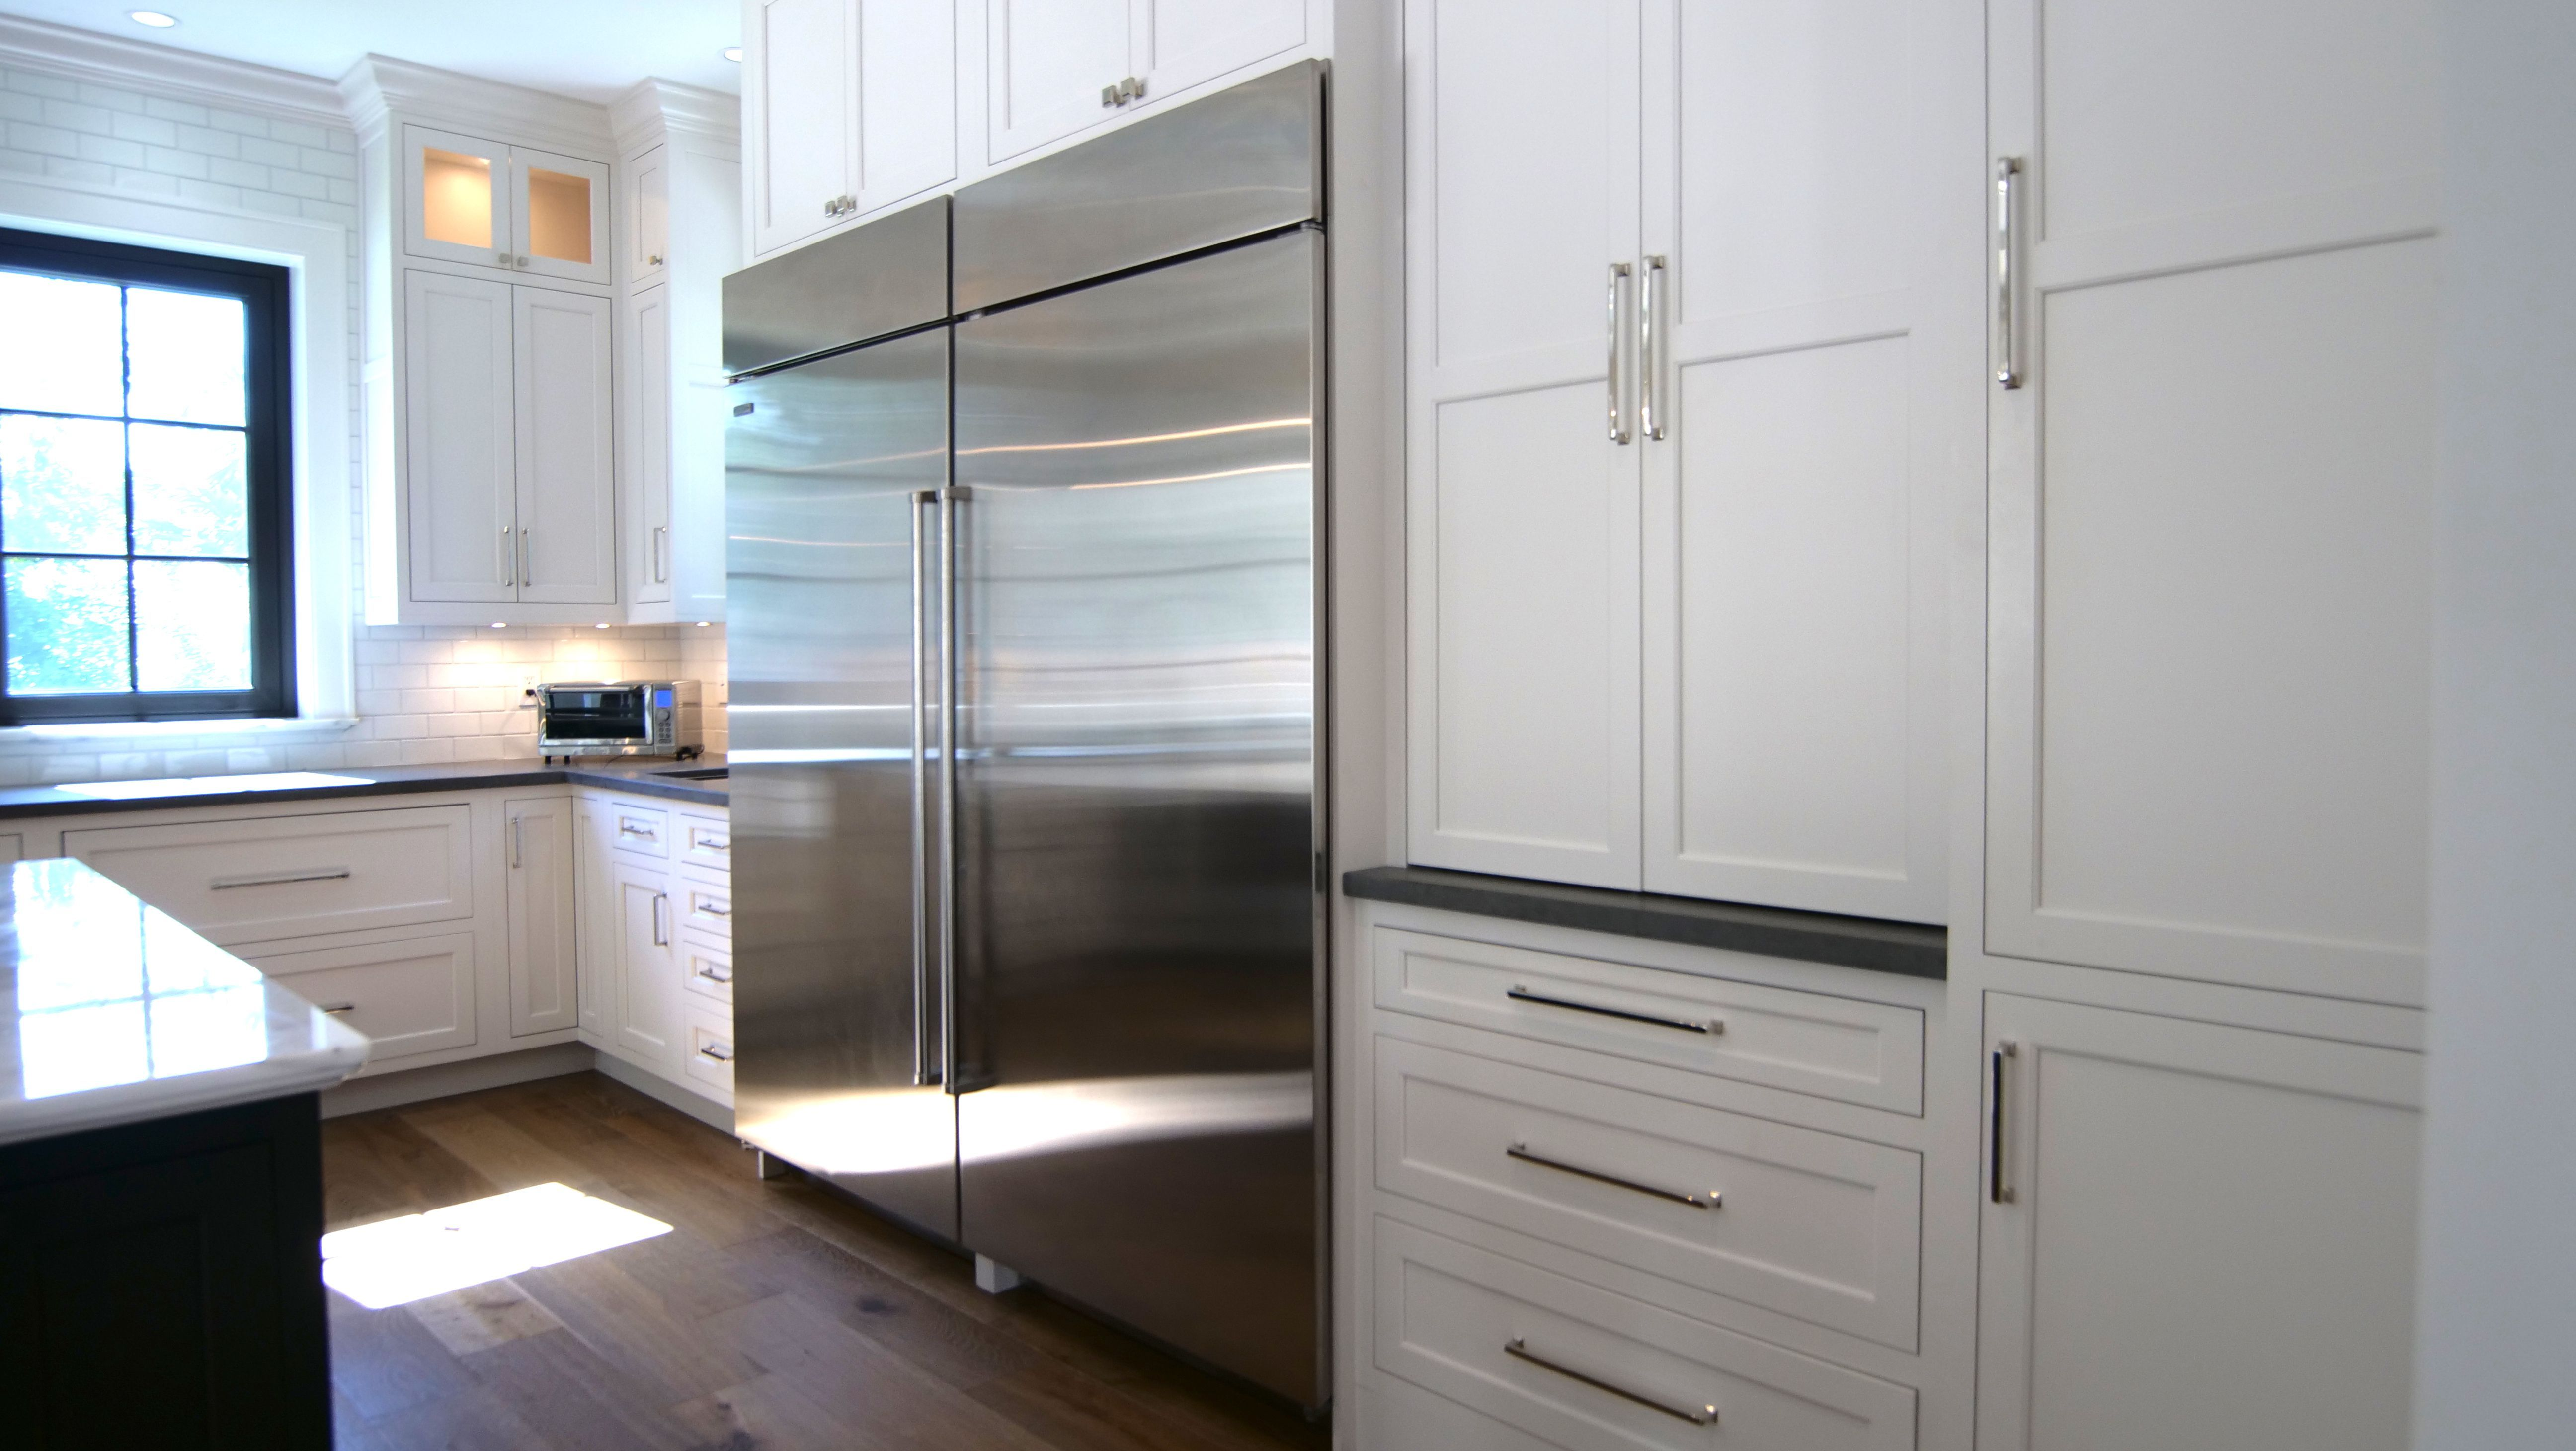 Enjoy Making Every Meal Call Us At 305 234 1990 In 2020 Love Your Home Kitchen Cabinets Kitchen